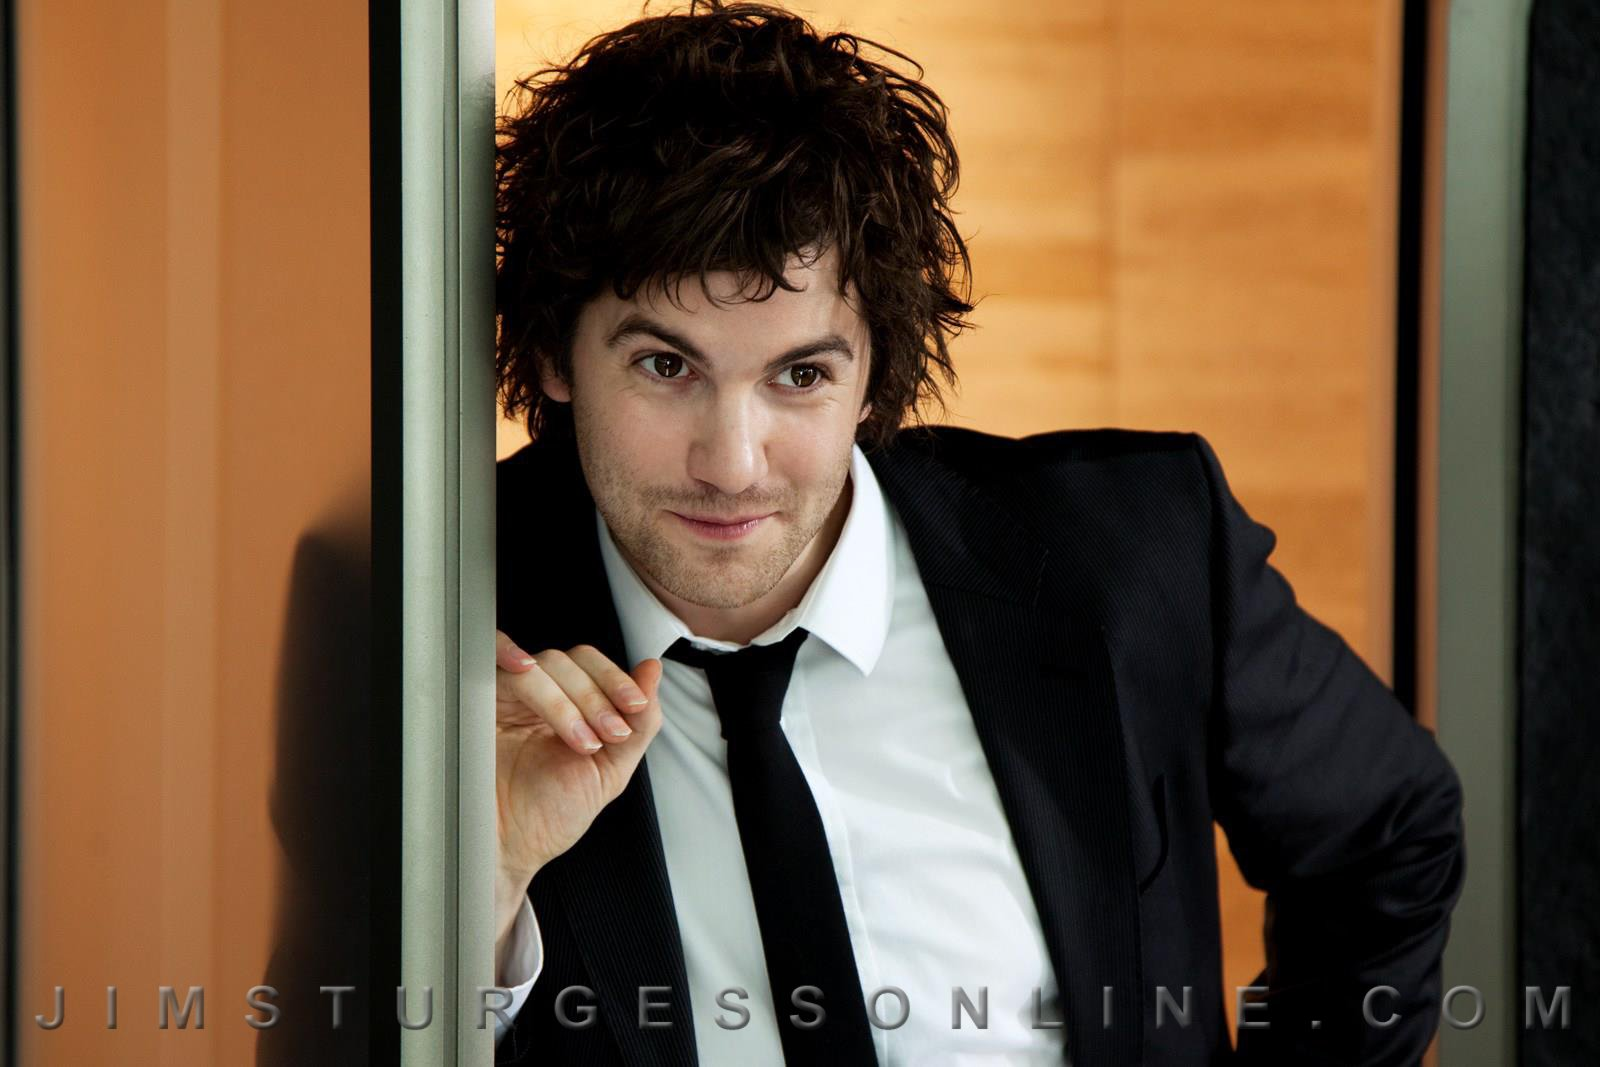 Jim Sturgess images Upside Down production images HD wallpaper 1600x1067